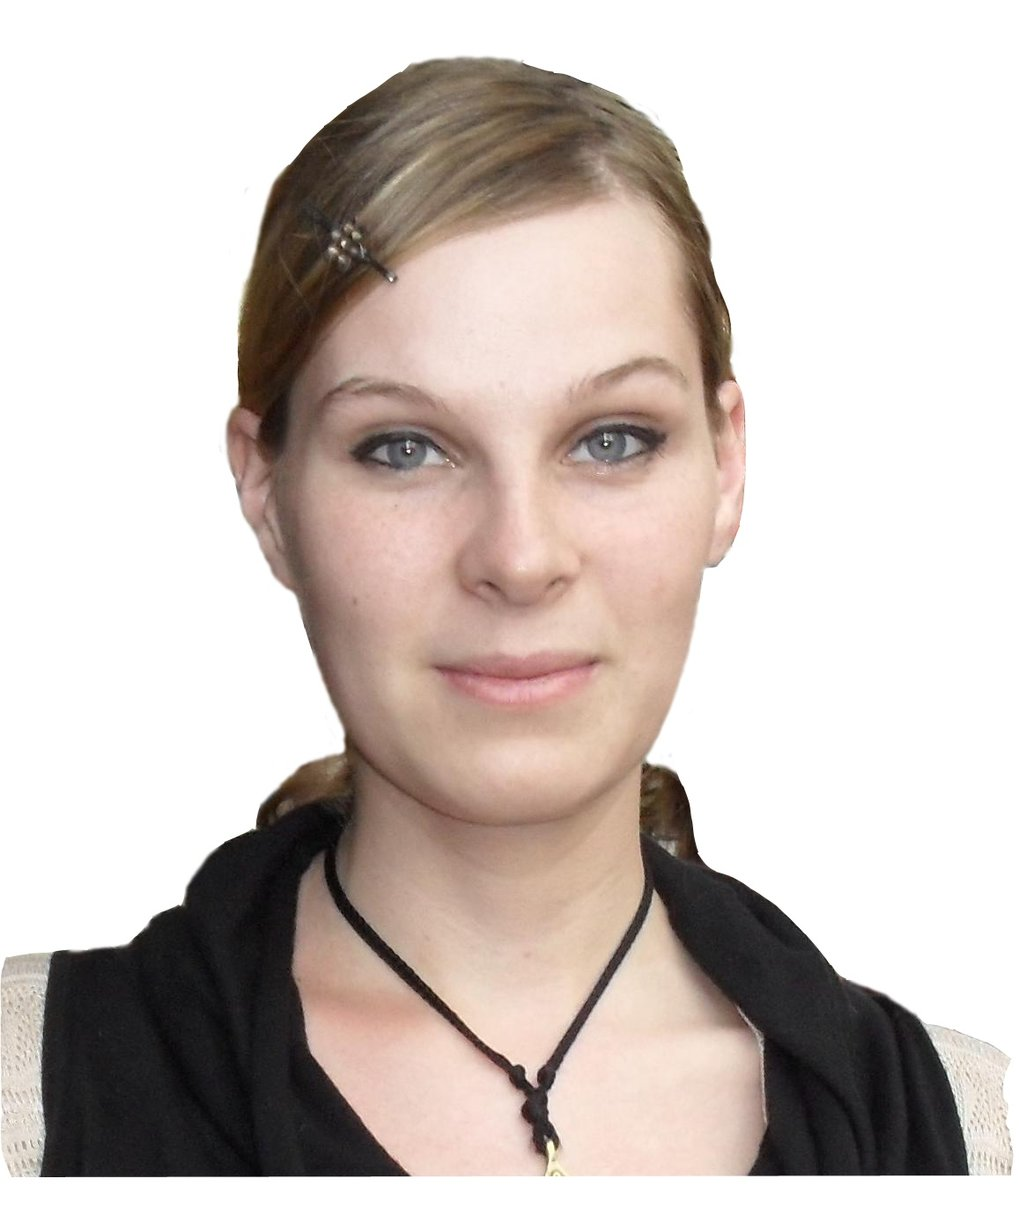 Kristin was born in Strausberg, Germany, and studied Biology at the Free University in Berlin and the University of Potsdam, where she received her Masters Degree in 2011. As PhD student within the IMPRS for Evolutionary Biology, she was working on cooperation in social dilemmas in the Research Group of Evolutionary Ecology and Evolutionary Theory at the Max Planck Institute in Plön. Kristin defended her thesis in 2017.Contact: hagel@evolbio.mpg.de